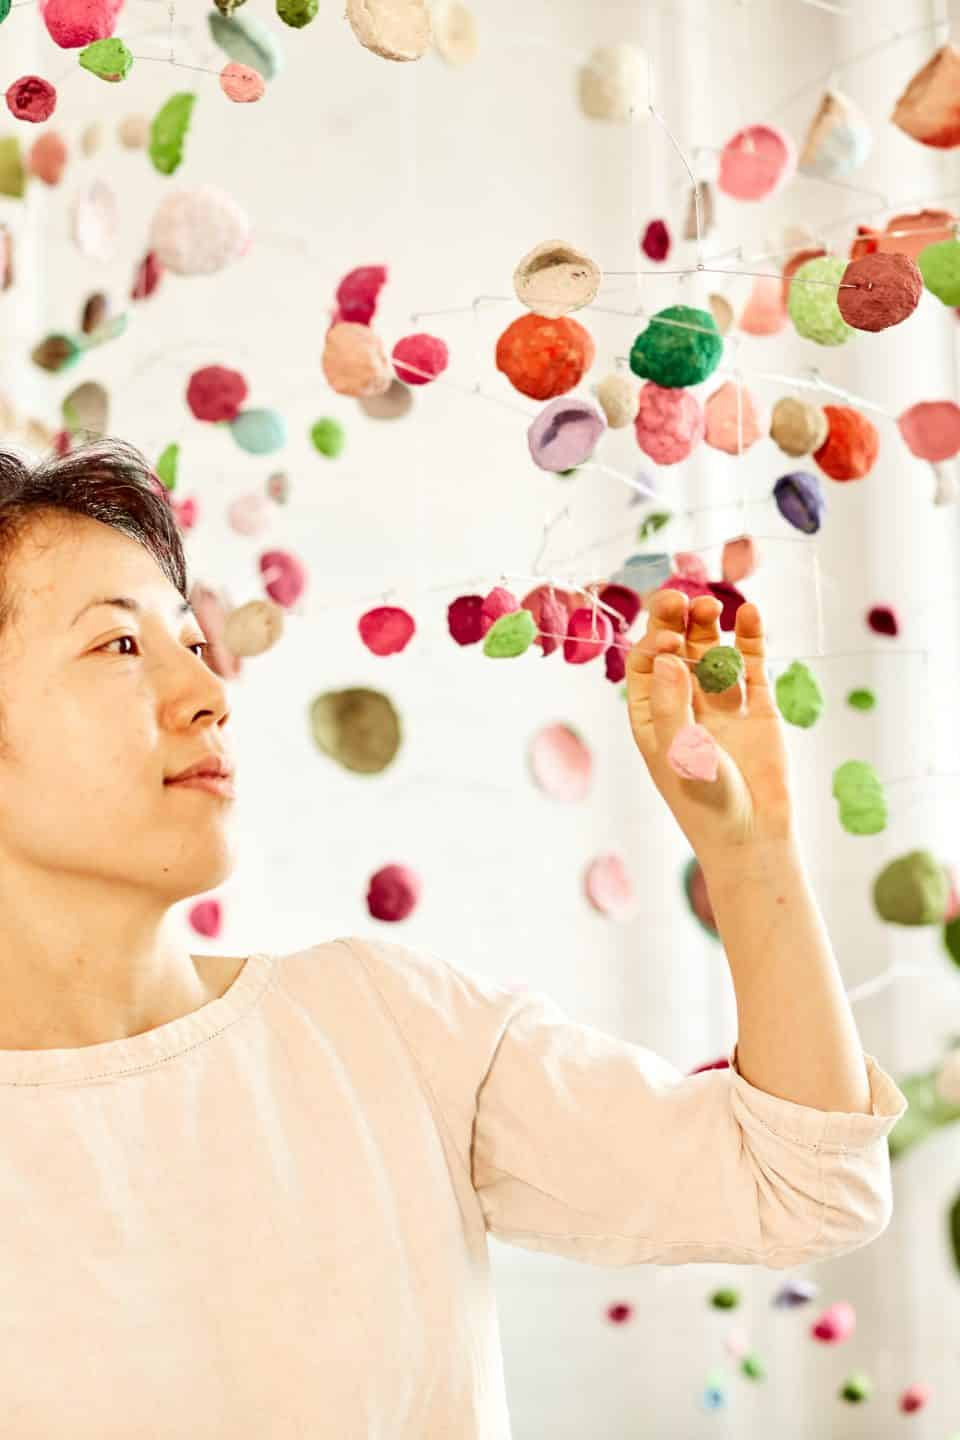 Yuko Nishikawa Wants to Save the Earth's Forests via Her Colorful Mobiles